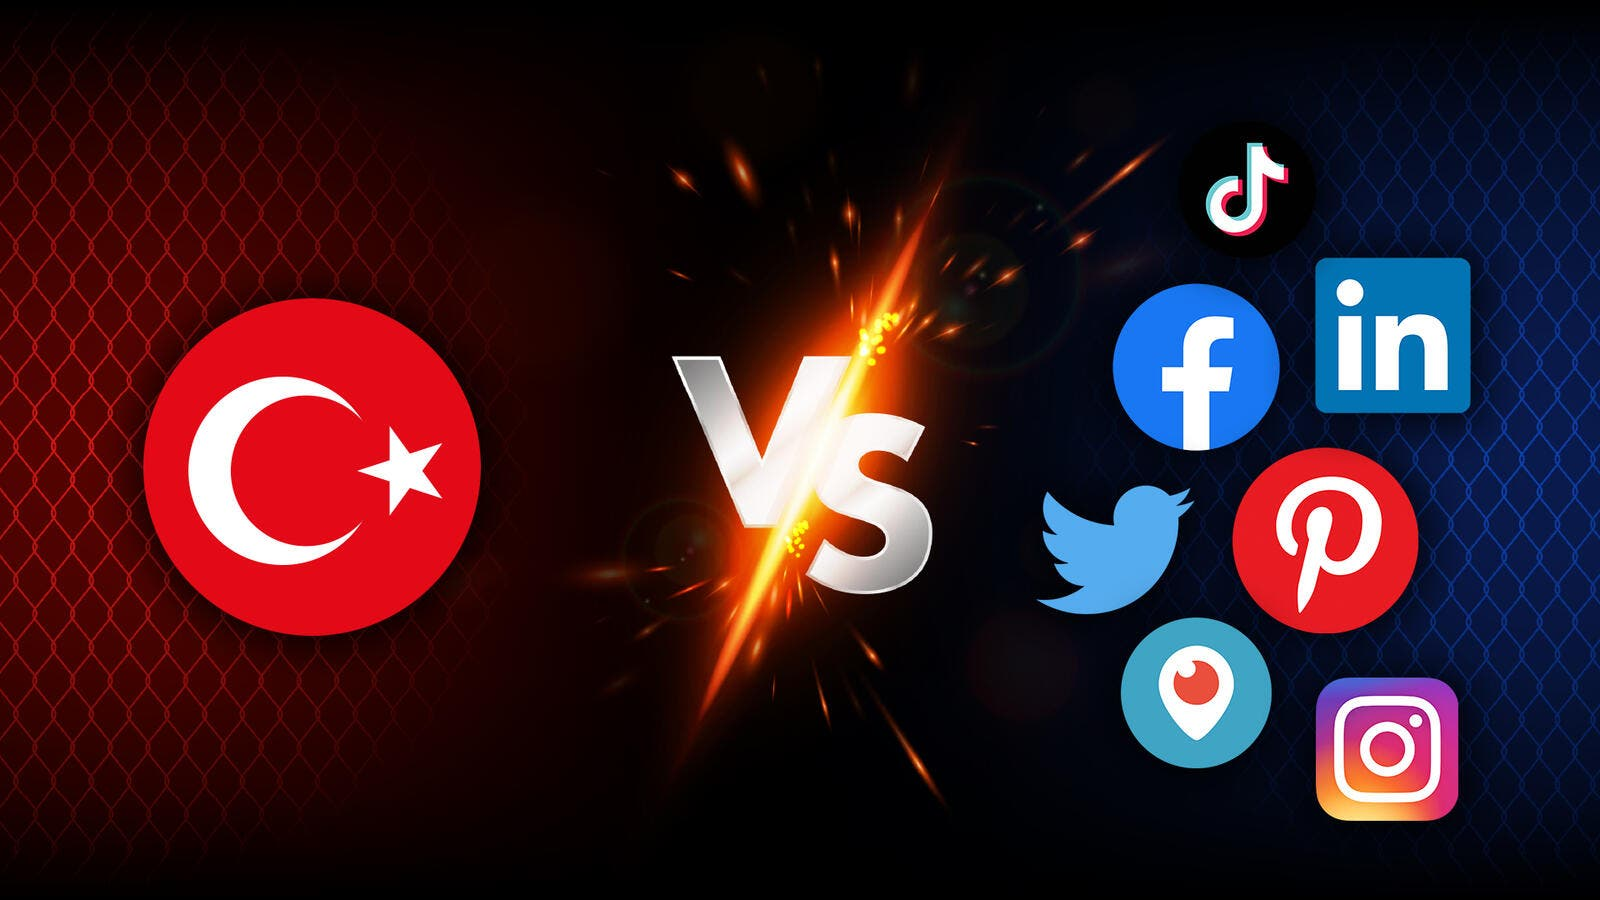 Tech This Week: Turkey Cracks Down on Social Media, Facebook Uses AI to Predict COVID Patients Health Status